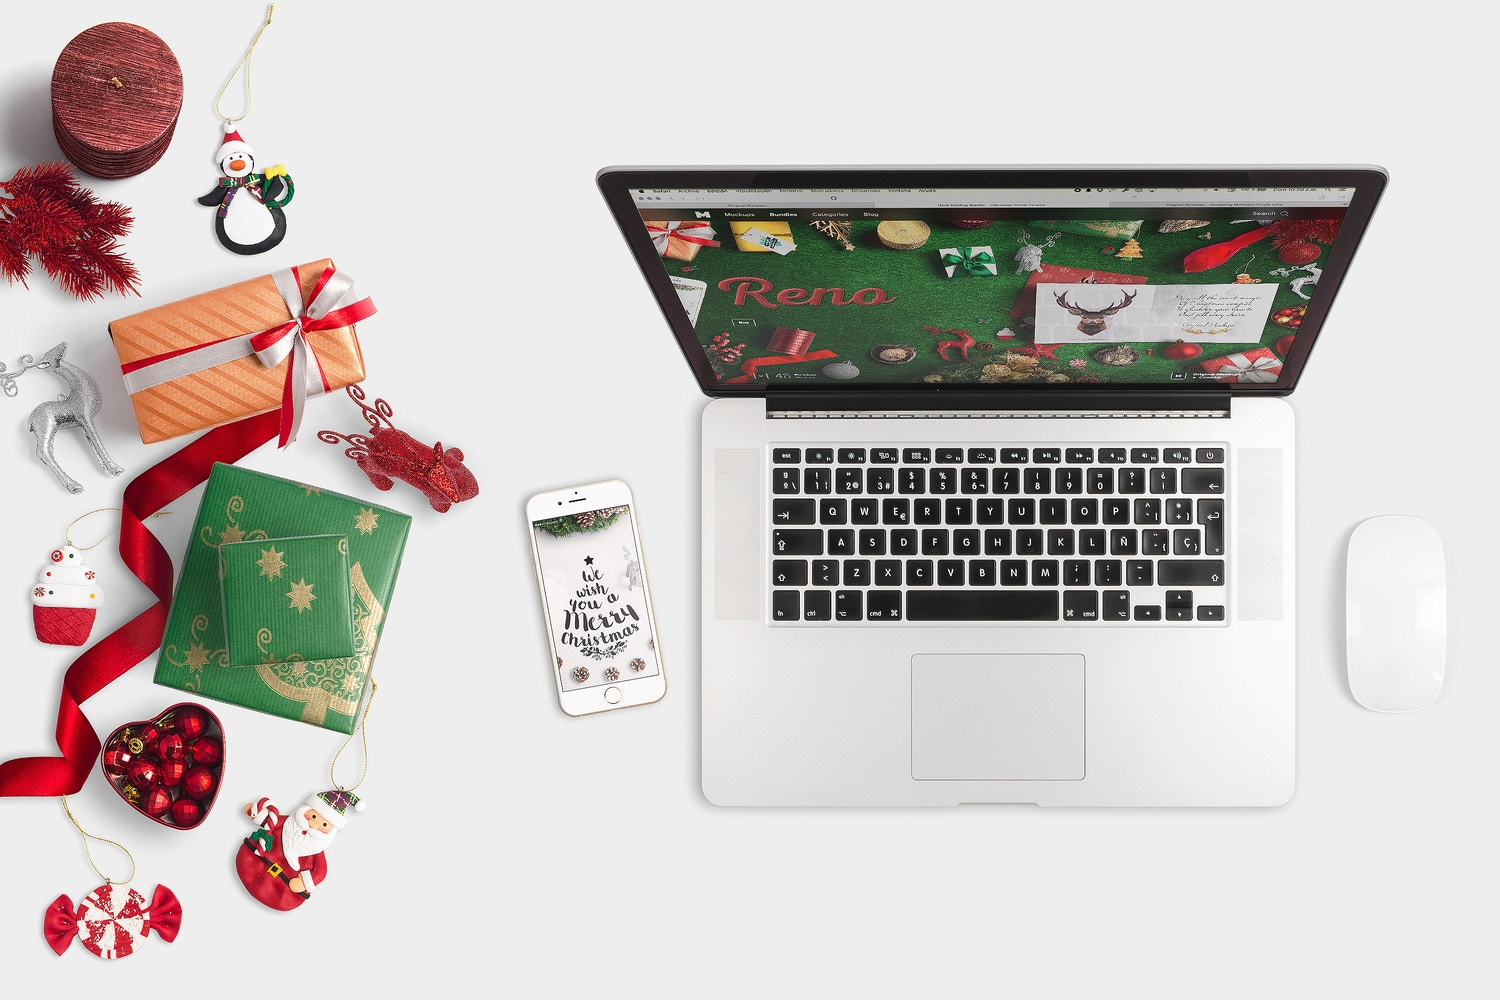 Christmas Header And Hero Scene Mockup 07 by Original Mockups on Original Mockups